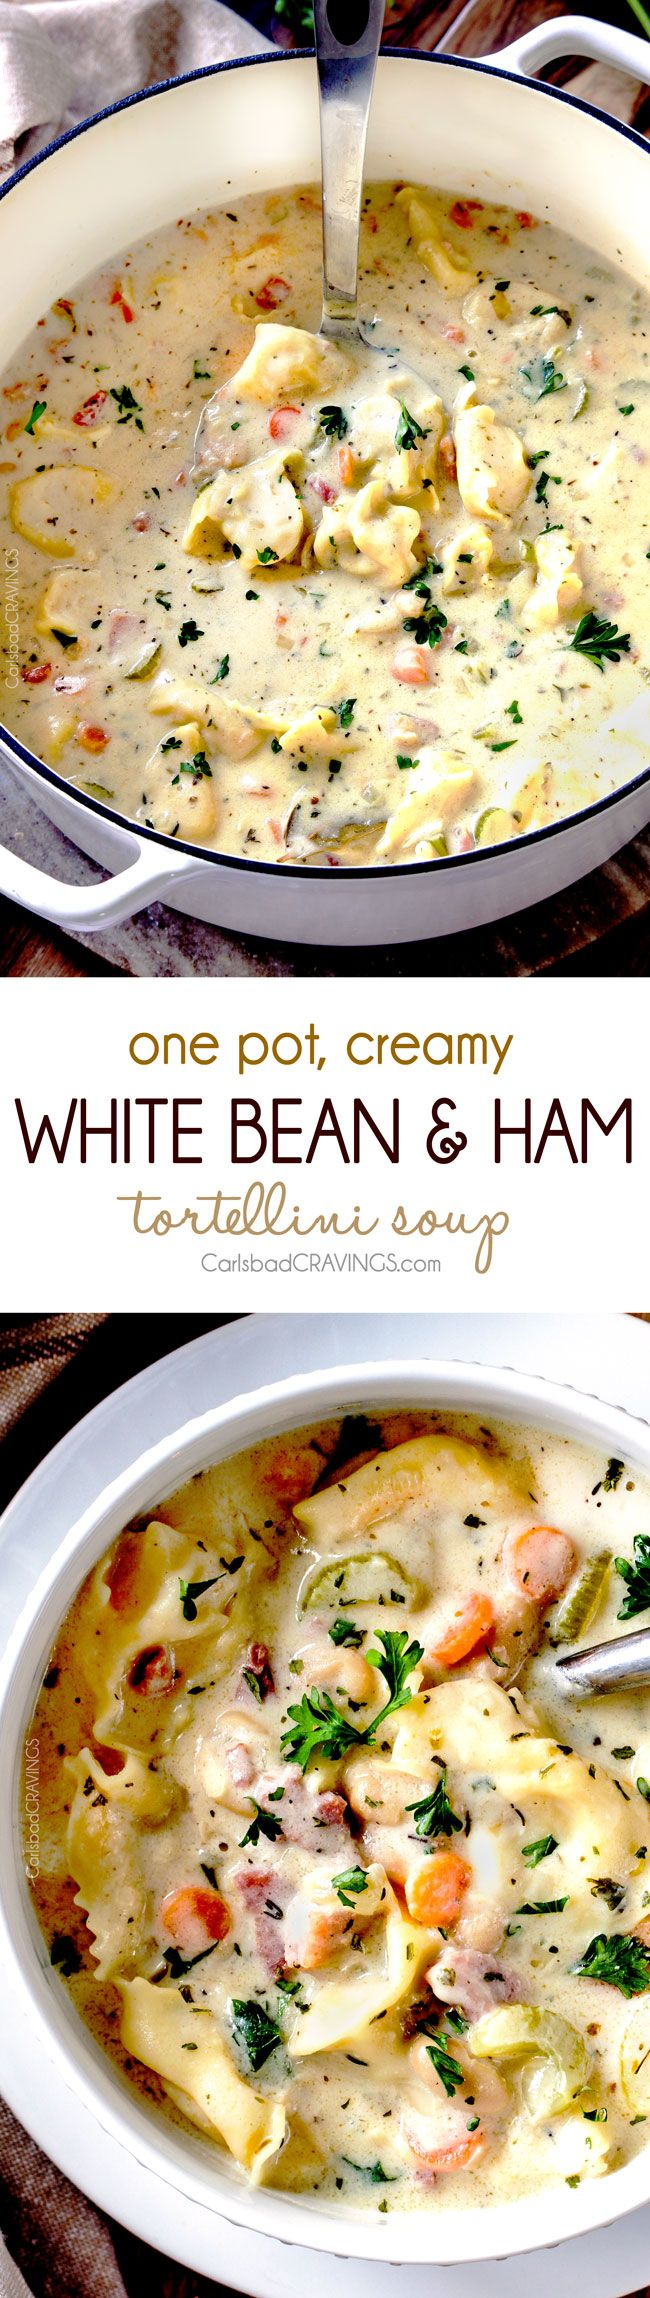 Hearty, cozy, One Pot Creamy White Bean and Ham Tortellini Soup simmered with…